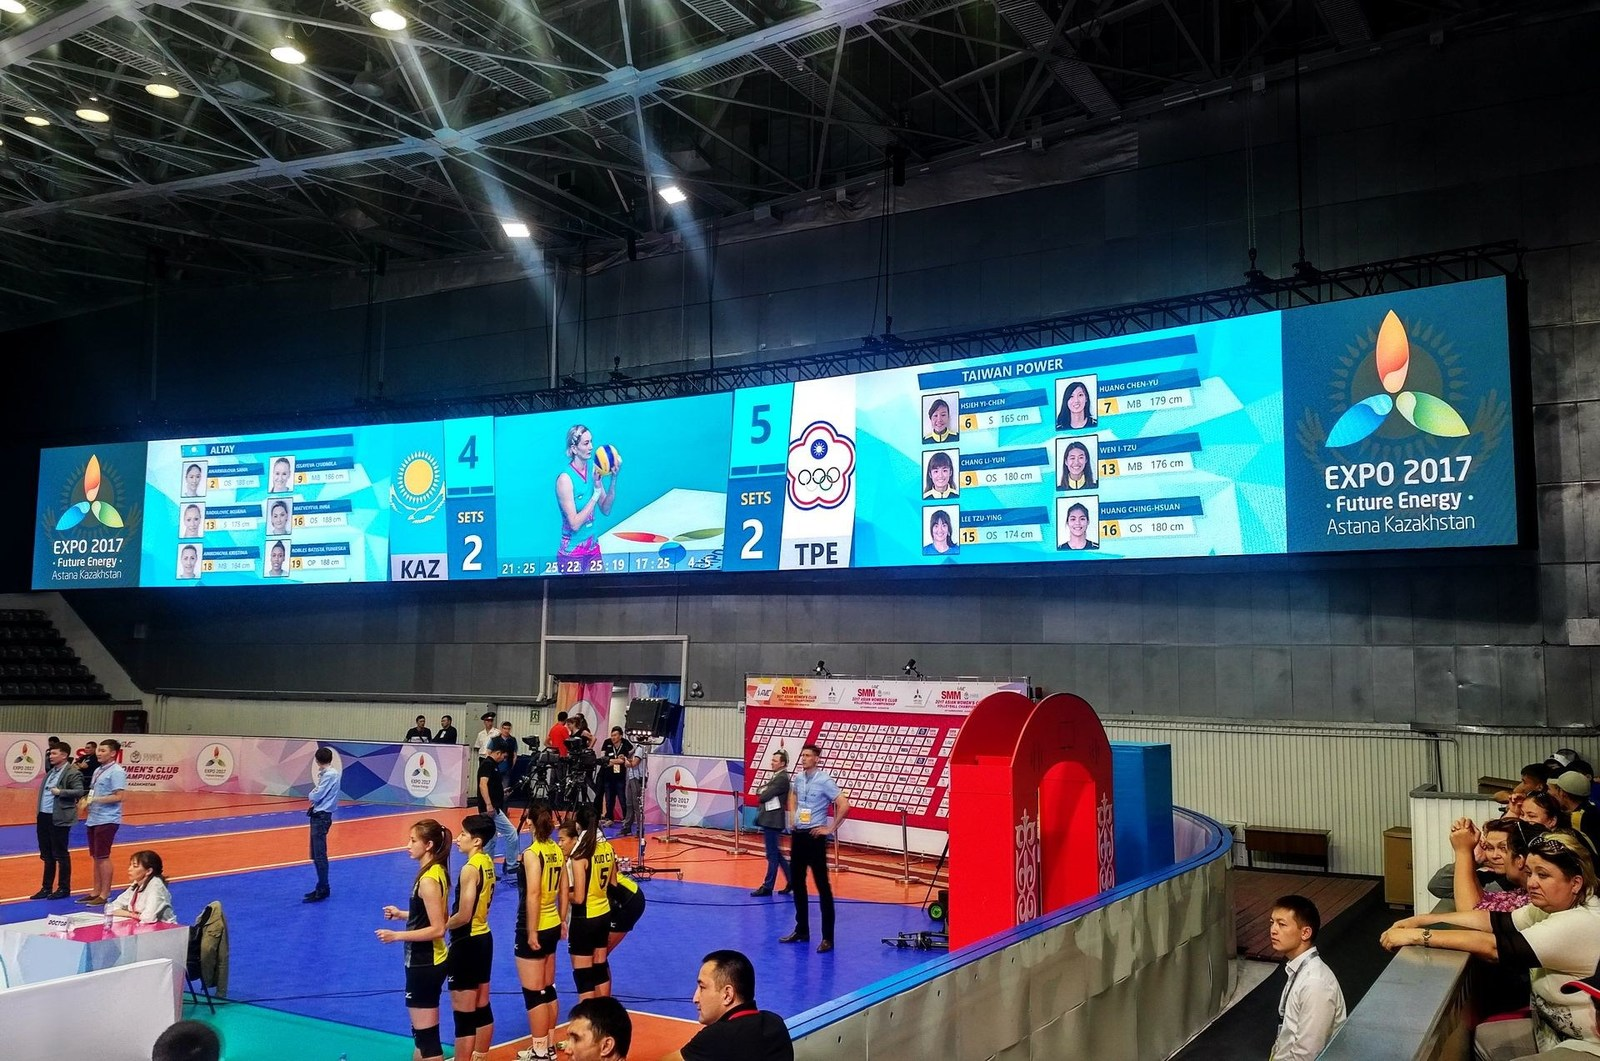 The most advanced volleyball venue on the planet is for Cutting edge technology news